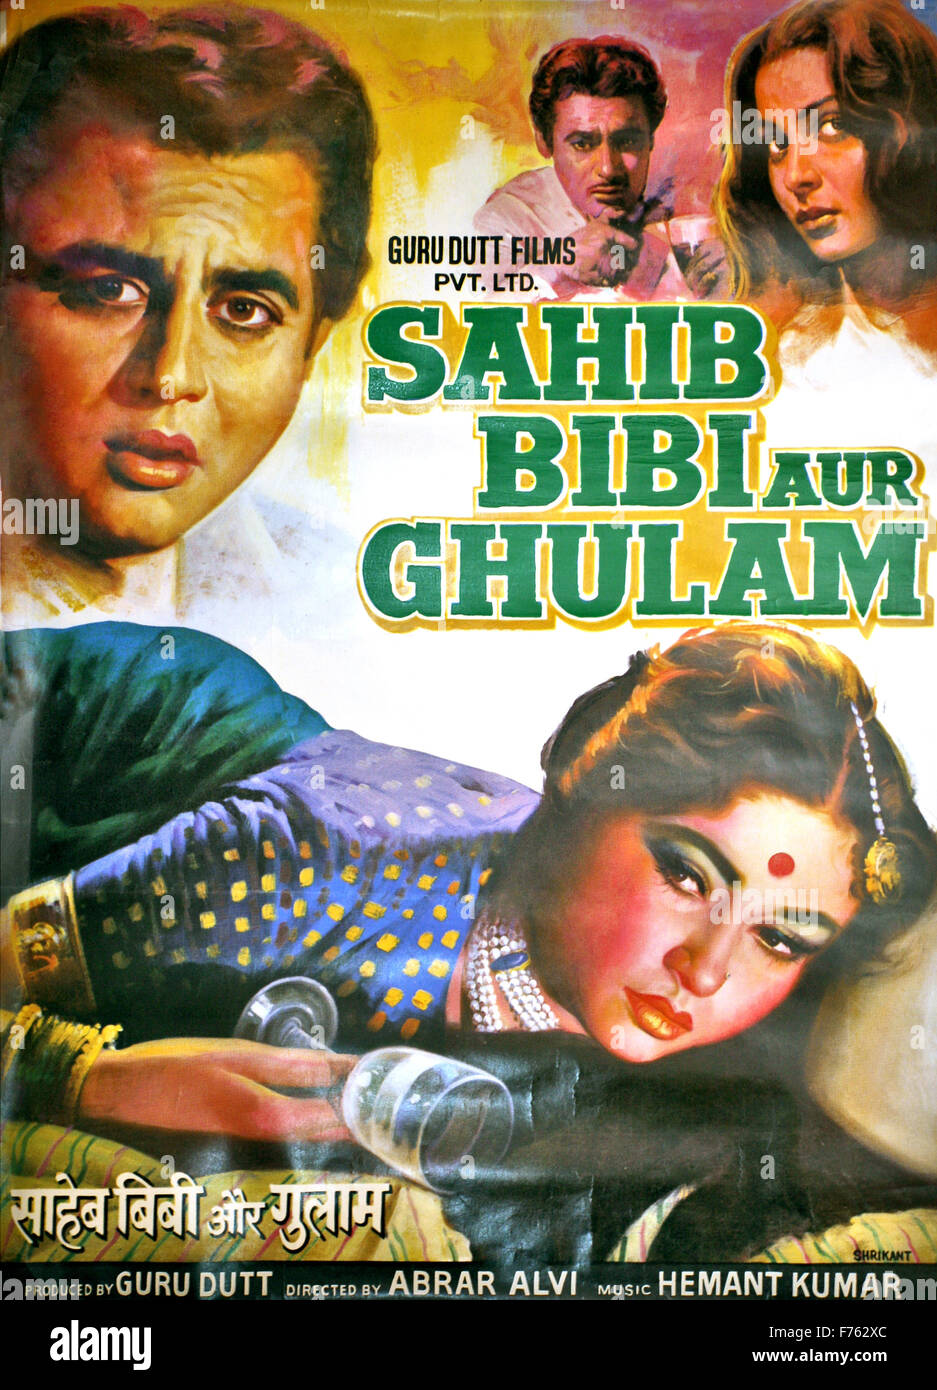 Indian Movie Poster Stock Photos & Indian Movie Poster Stock